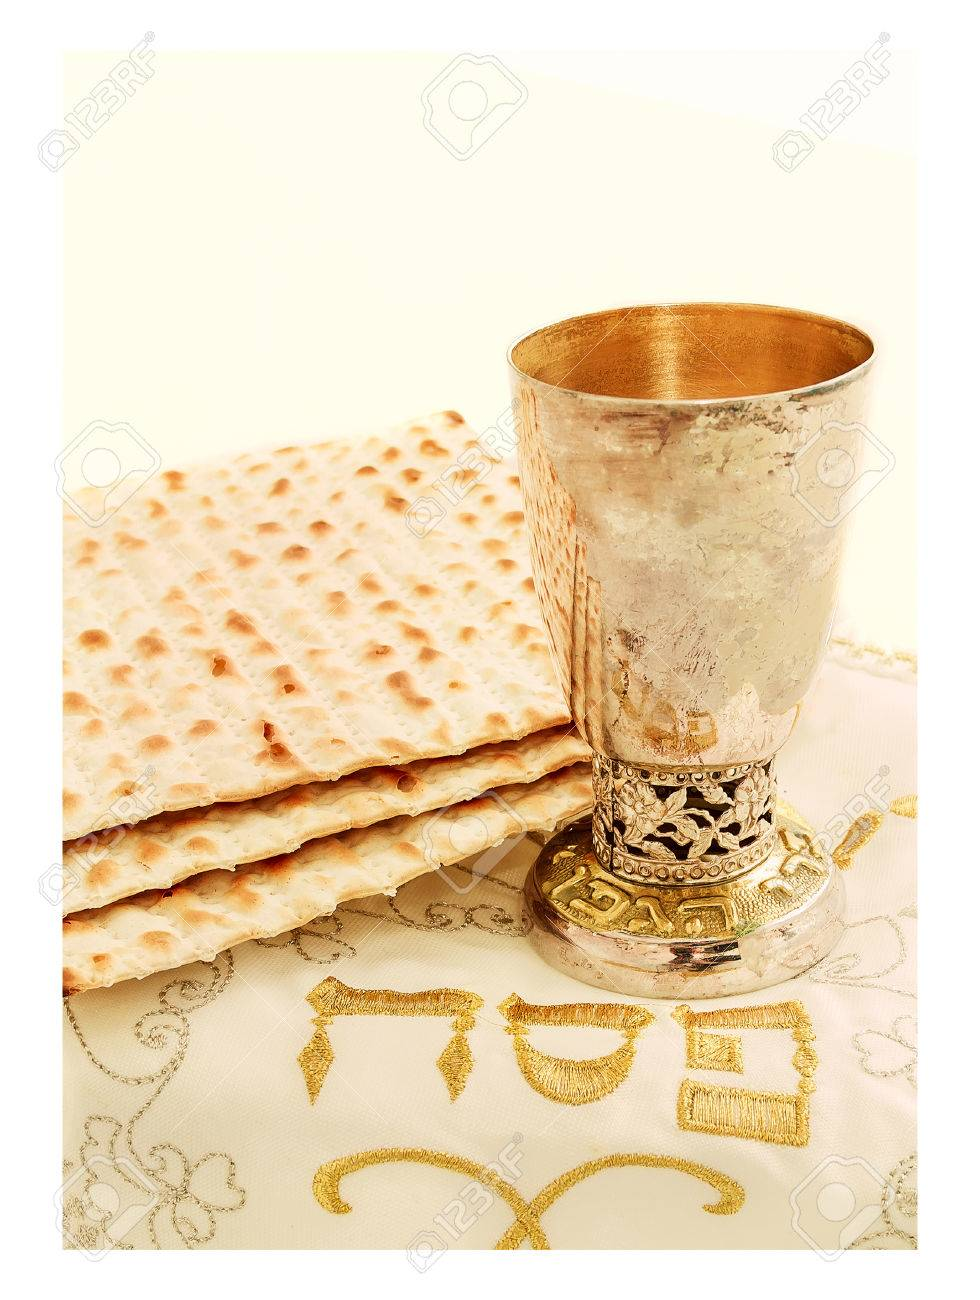 The Symbols Of The Feast Of The Passover Matzah The Cup With